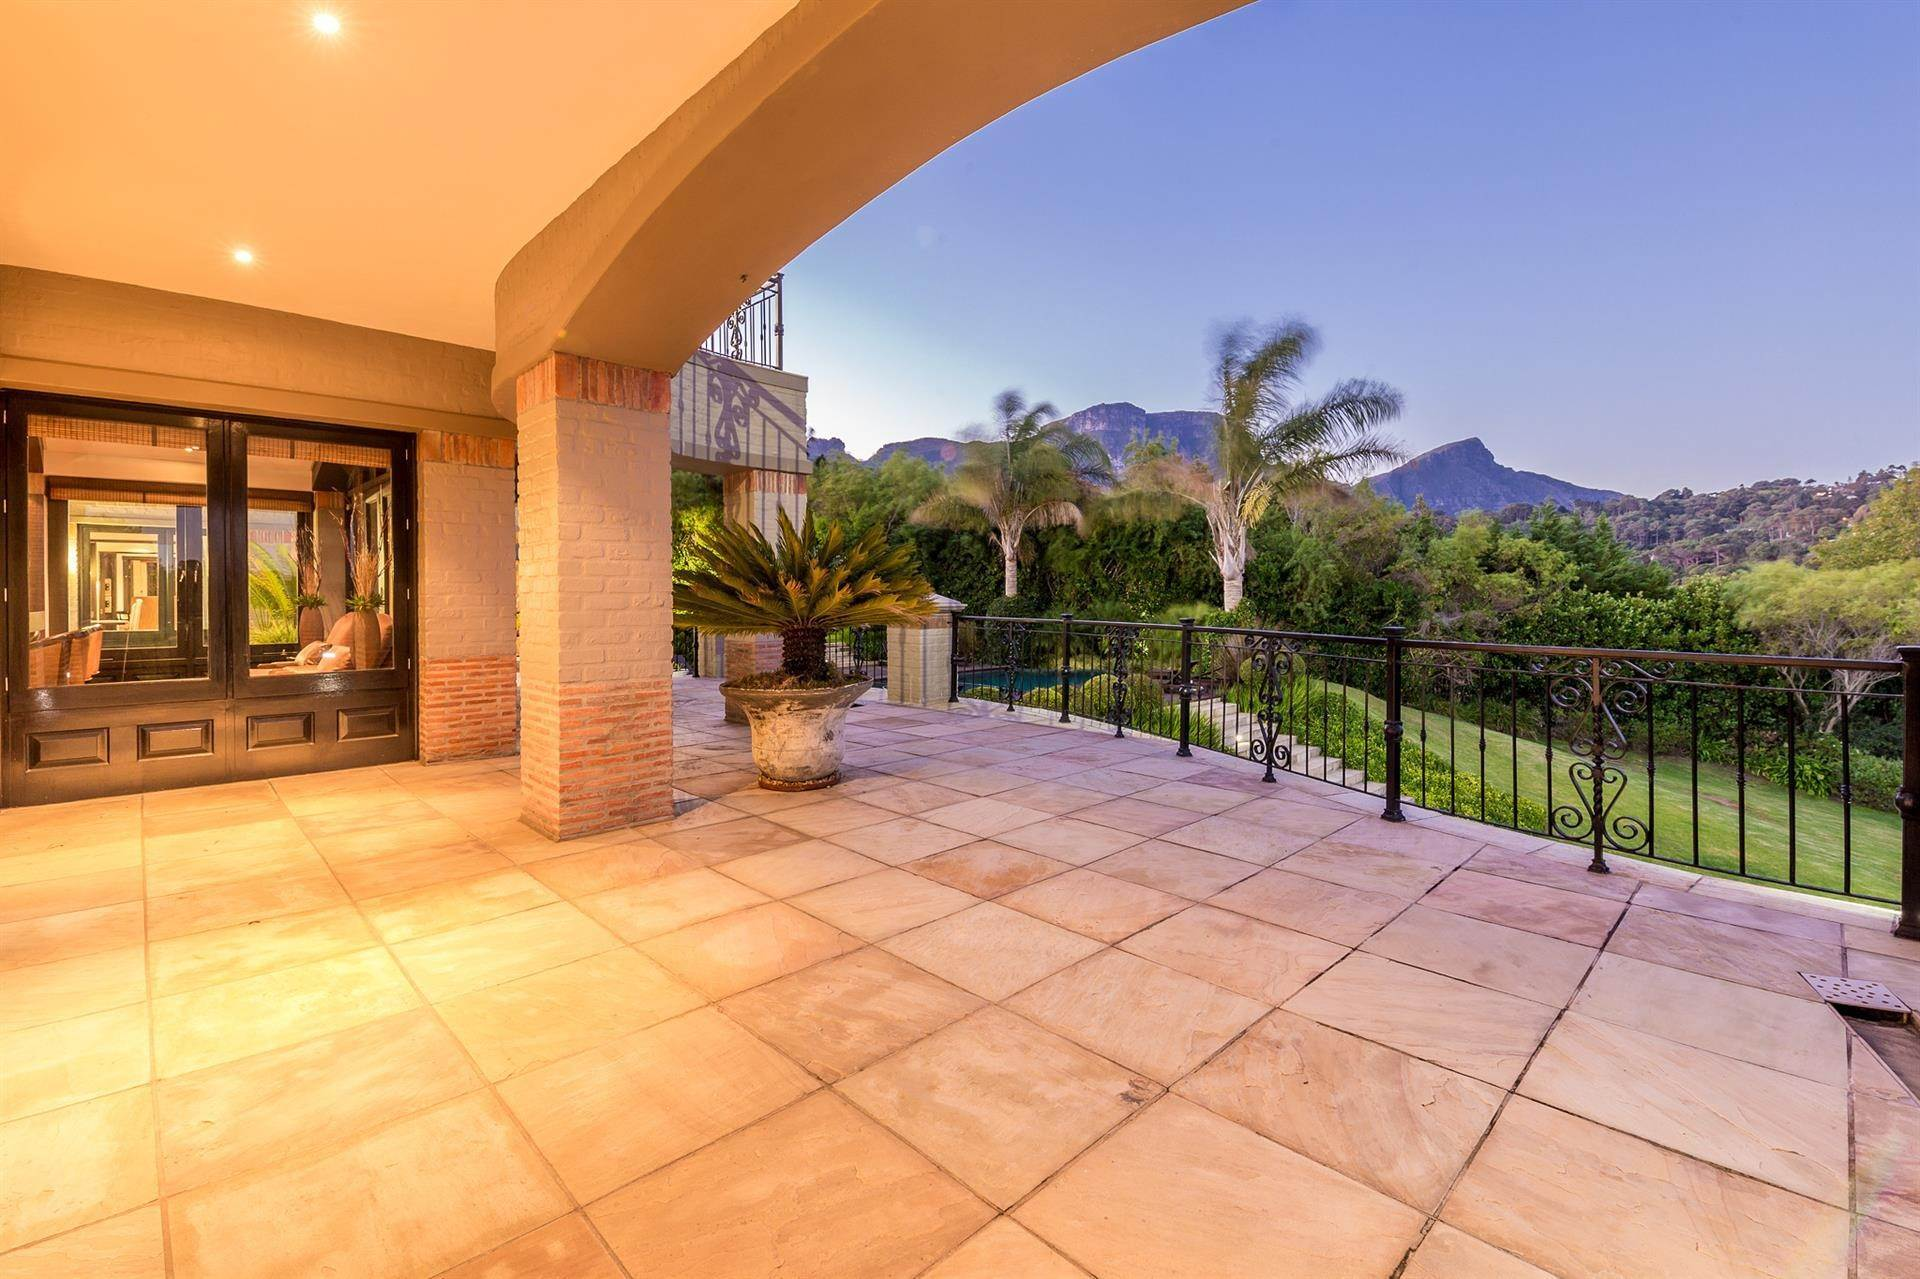 5. Estate for Sale at DISCREET LIFESTYLE FOR HIGH PROFILE INVESTORS Constantia, Western Cape,8001 South Africa